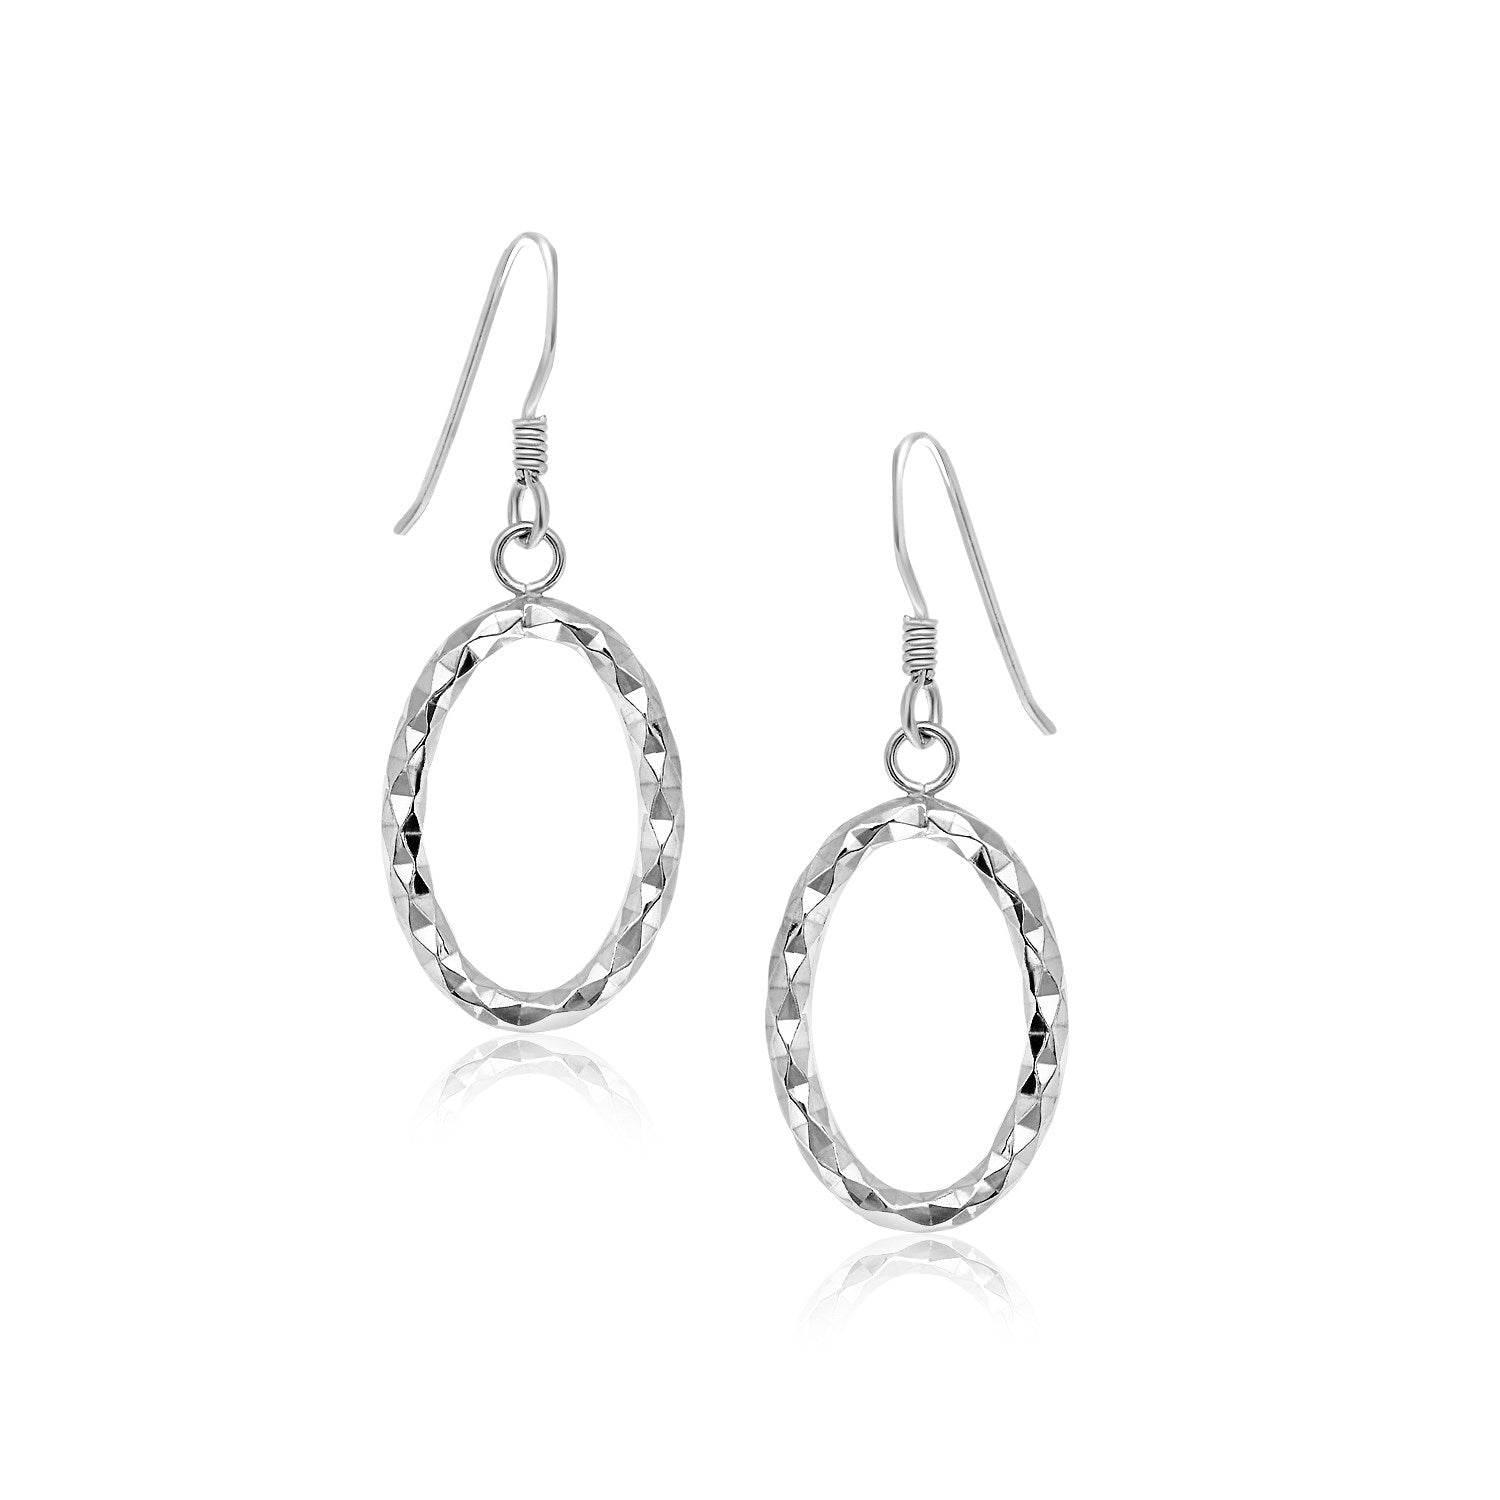 Unique Modern Paris Style Sterling Silver Open Oval Drop Earrings with Textured Design